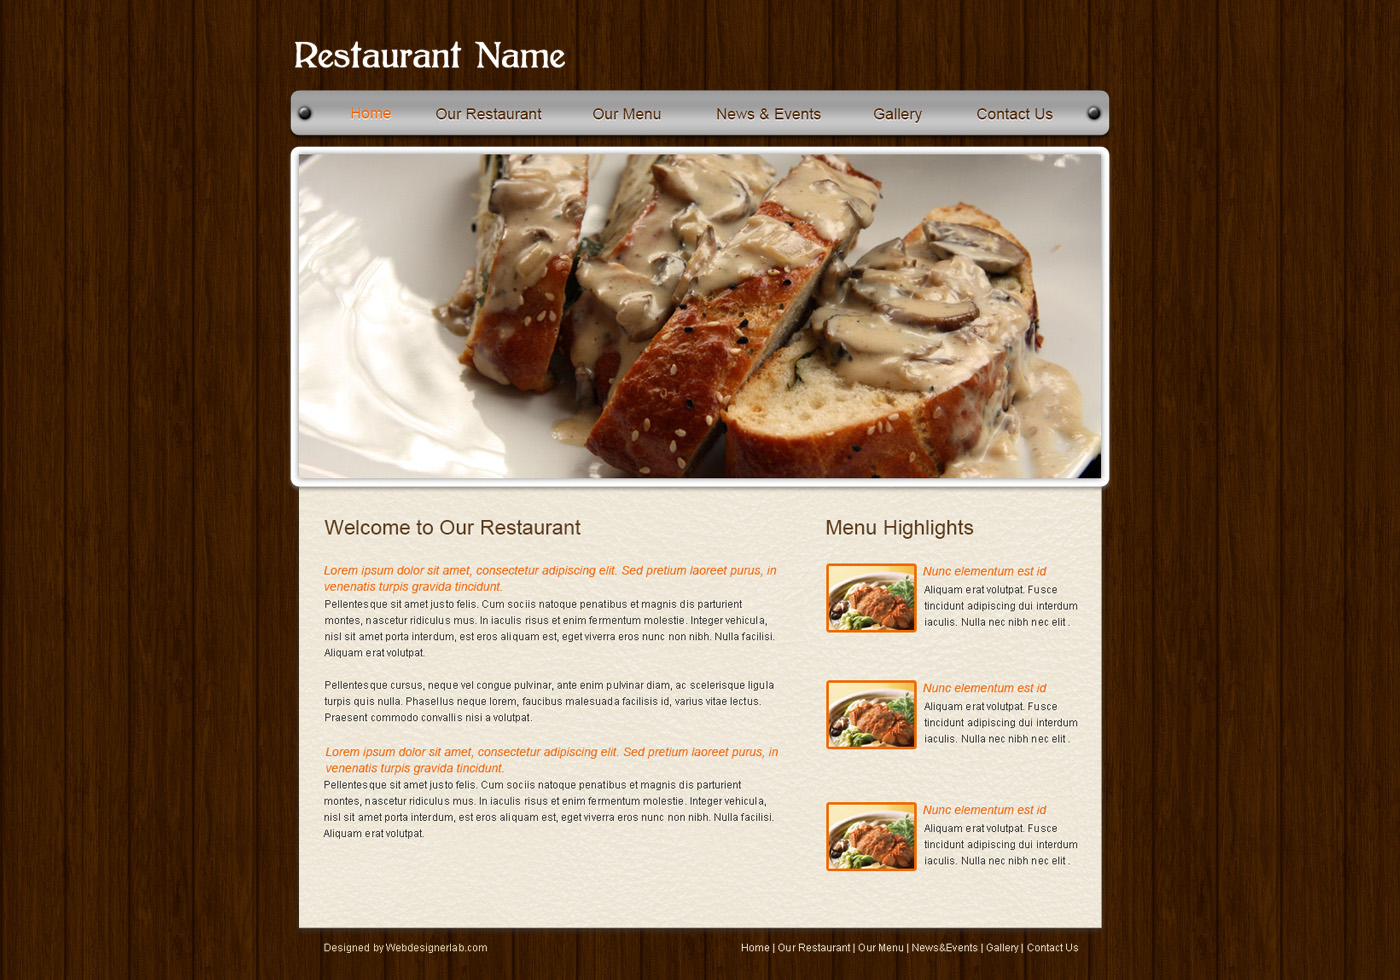 Website Template For Restaurants Free Photoshop Brushes At Brusheezy